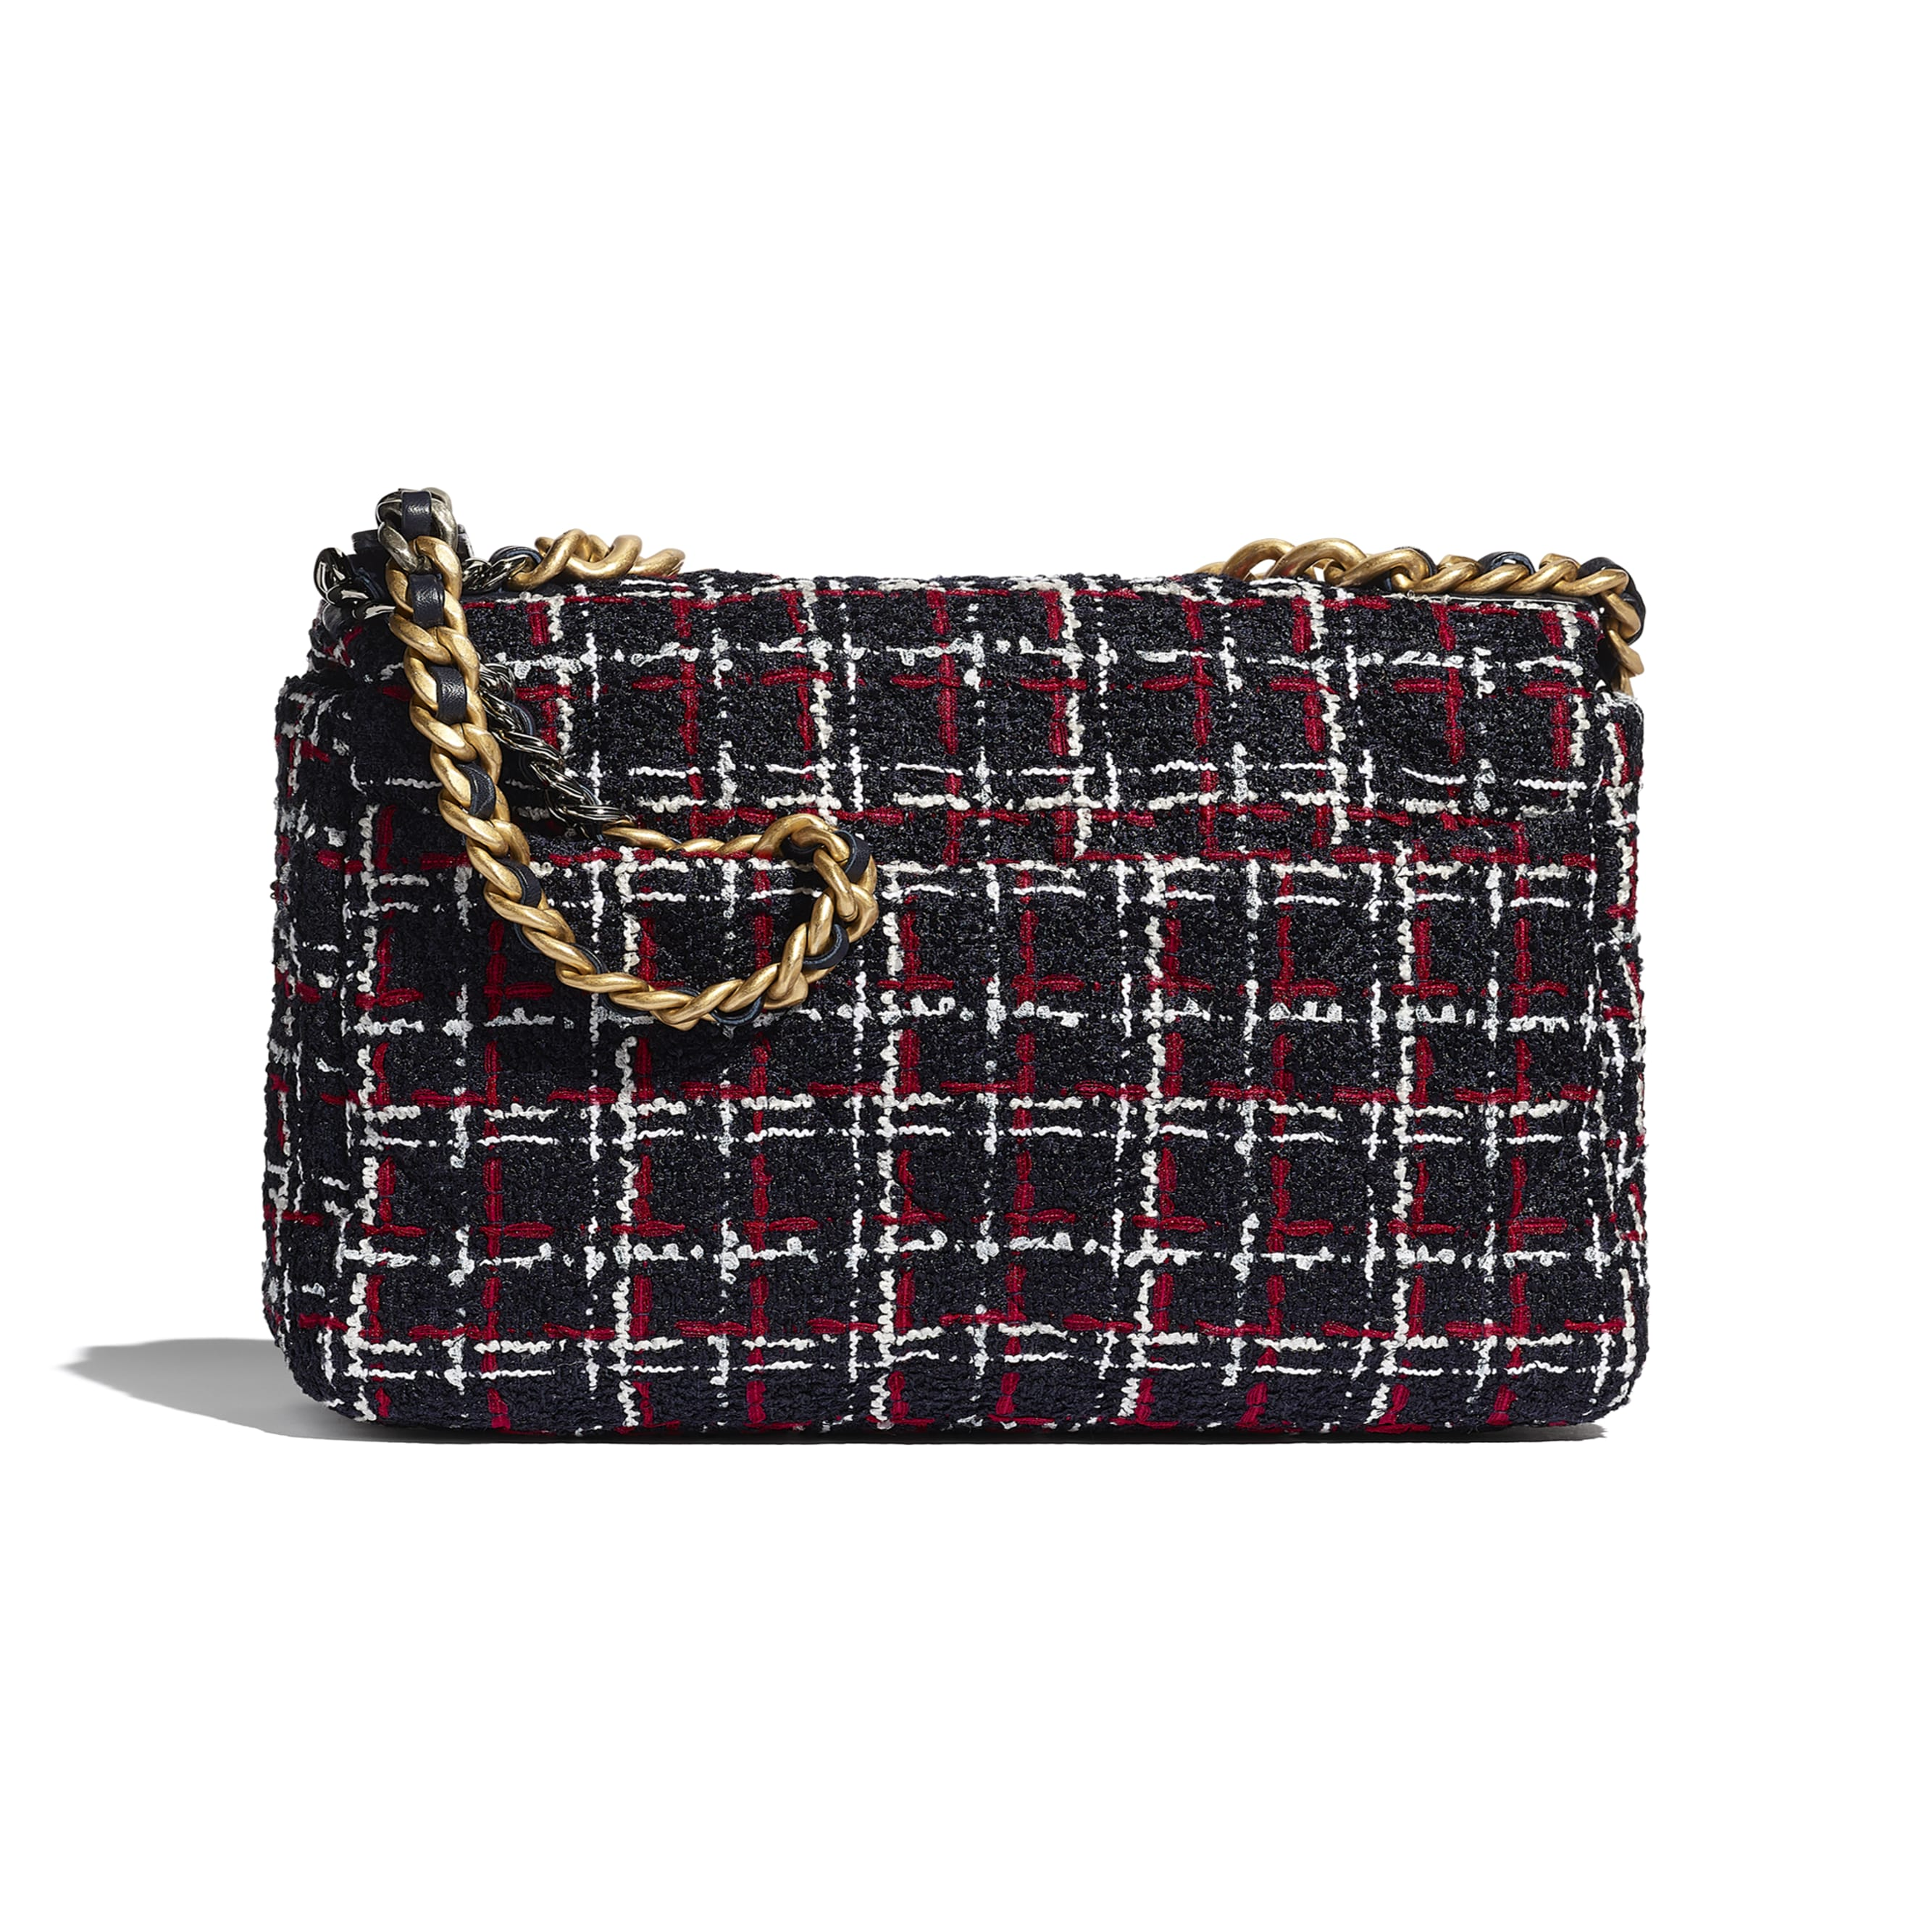 CHANEL 19 Large Flap Bag - Navy Blue, White & Red - Tweed, Gold-Tone, Silver-Tone & Ruthenium-Finish Metal - Alternative view - see standard sized version